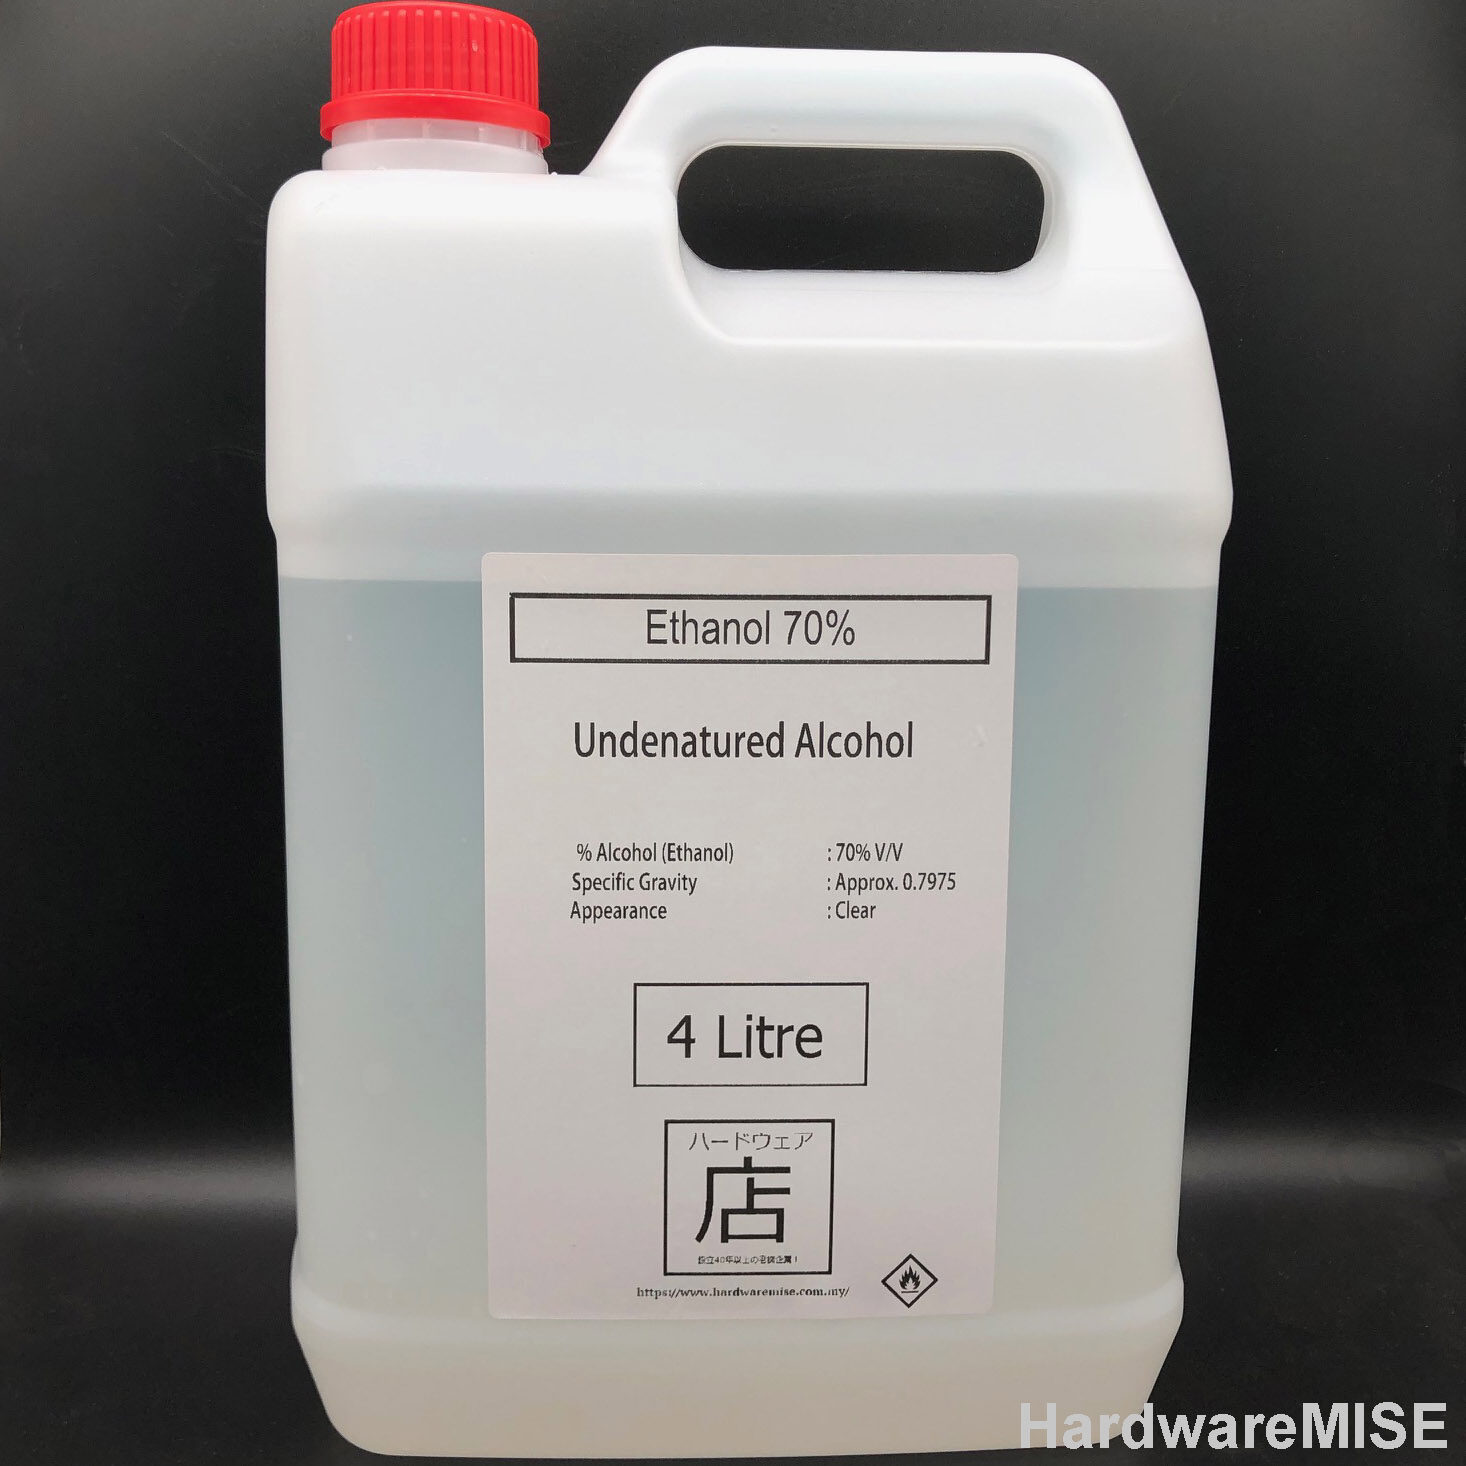 Ethanol 70% Sanitizer Food Grade Undenatured Ethyl Alcohol Potable Alcohol Disinfectant 消毒 乙醇 4 Litre Malaysia Supplier